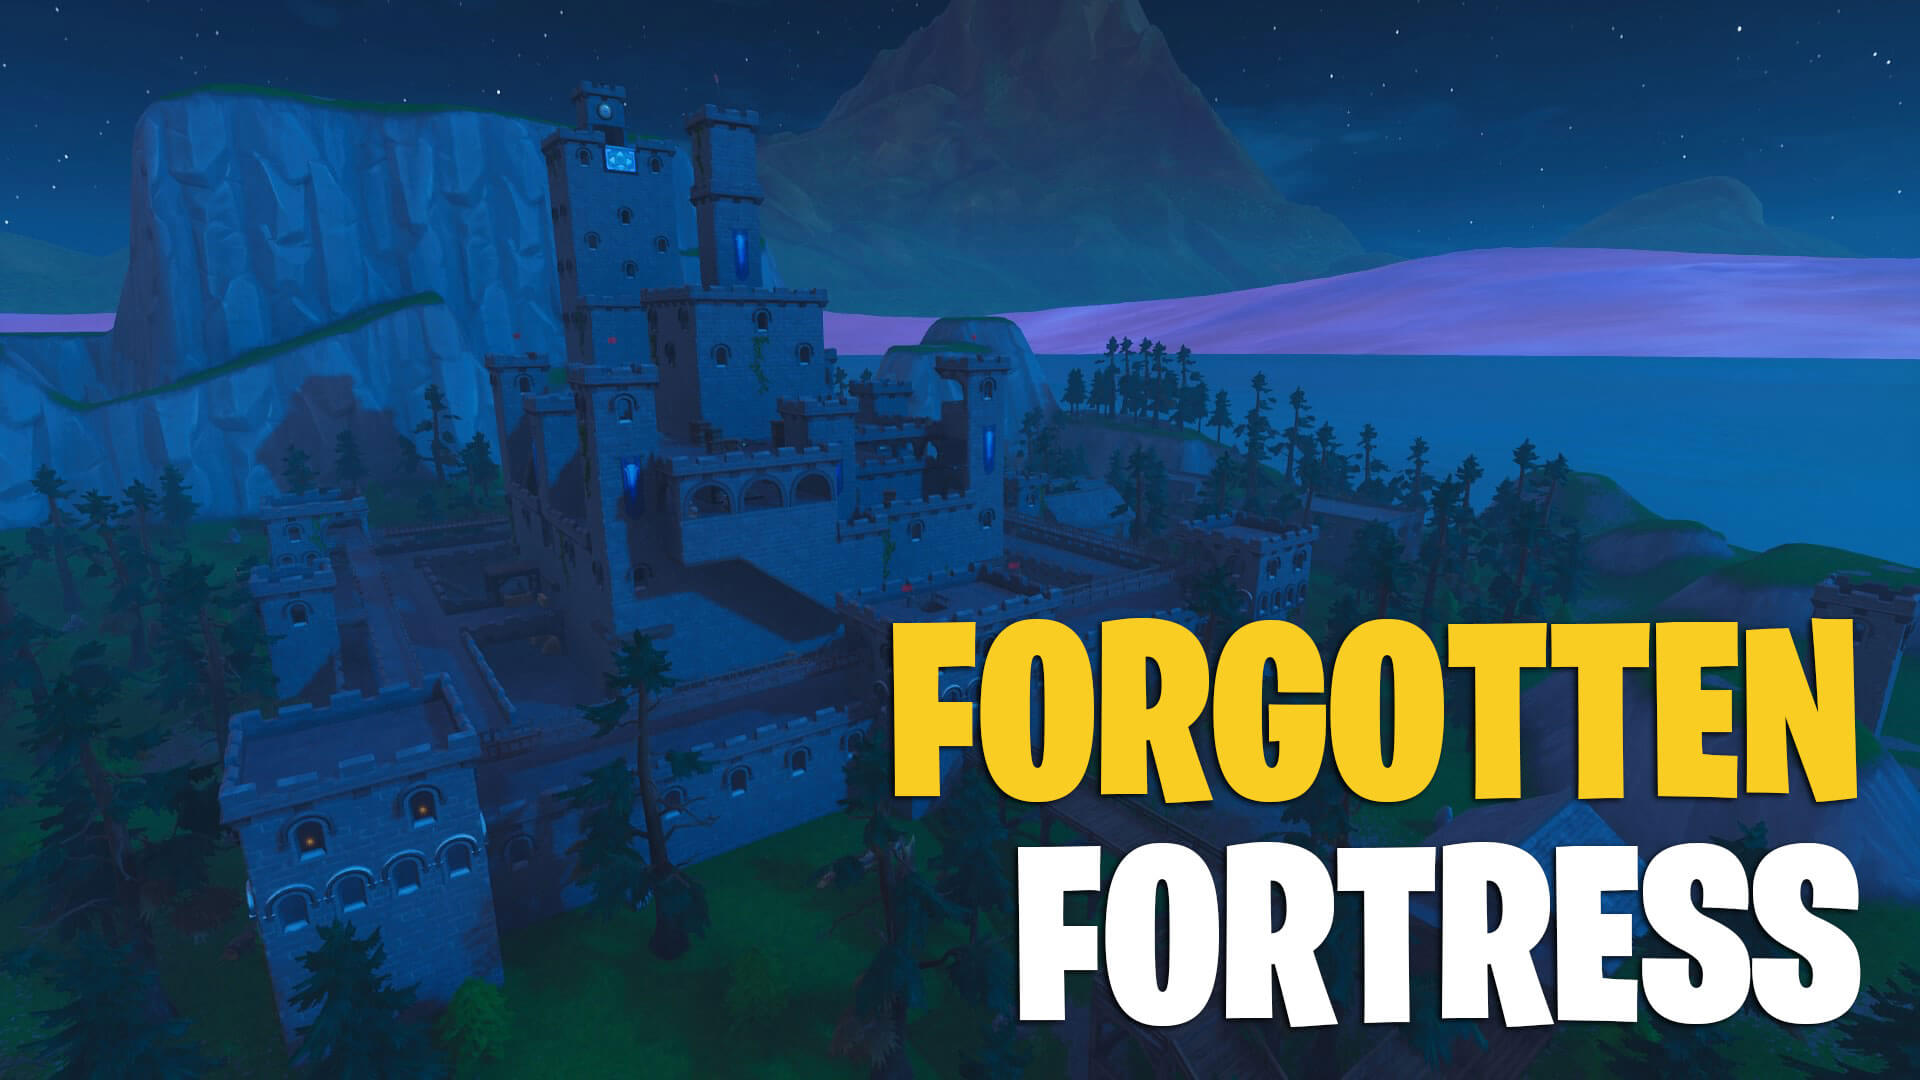 FORGOTTEN FORTRESS